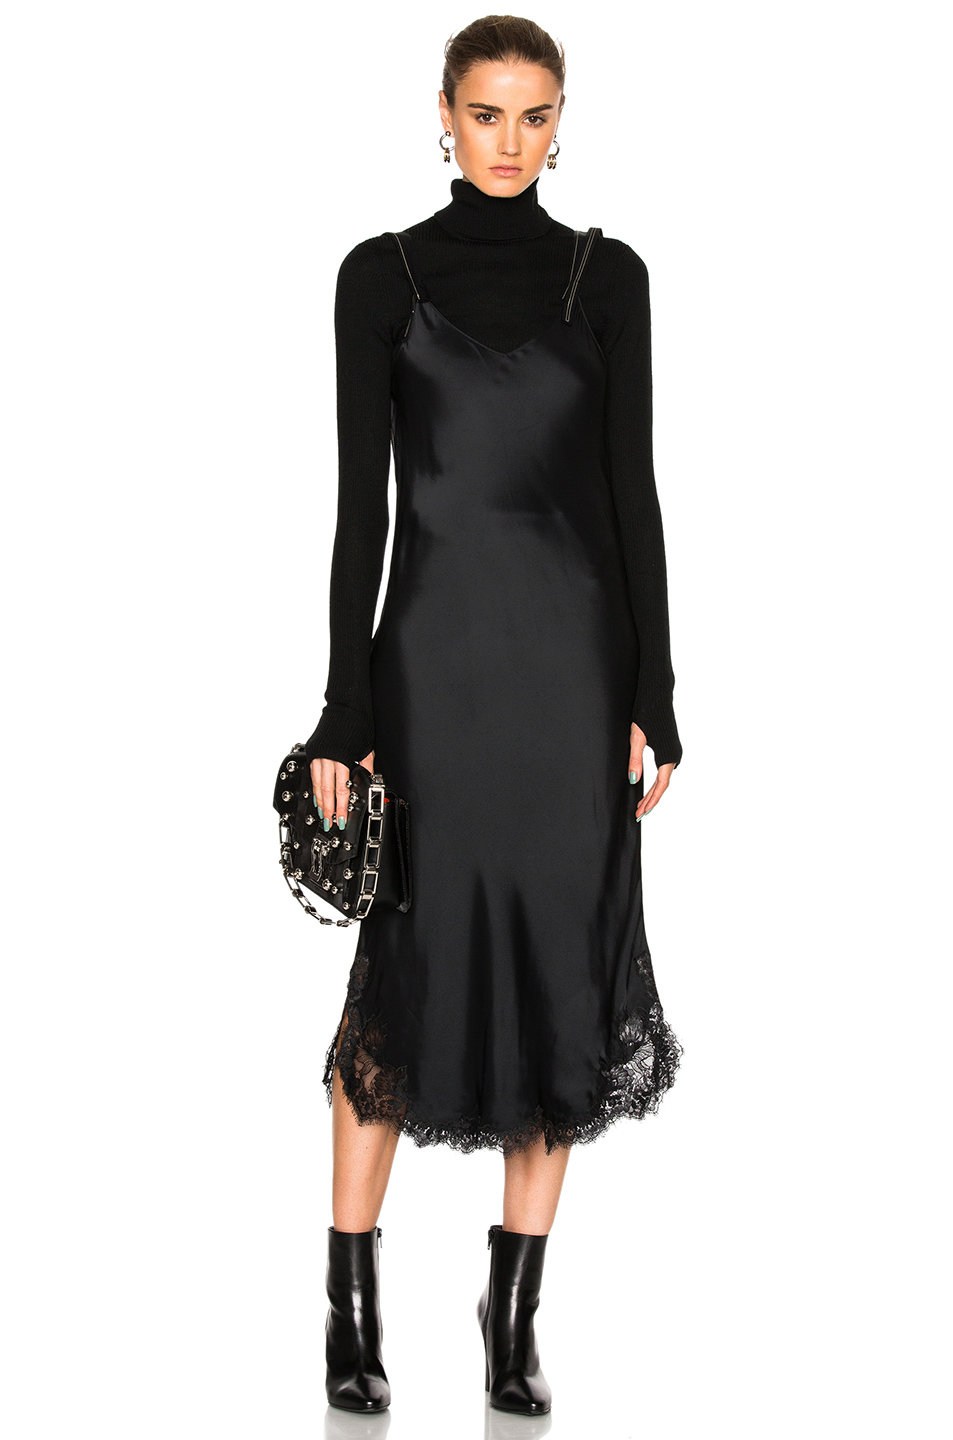 Helmut Lang Lace Slip Dress in Black